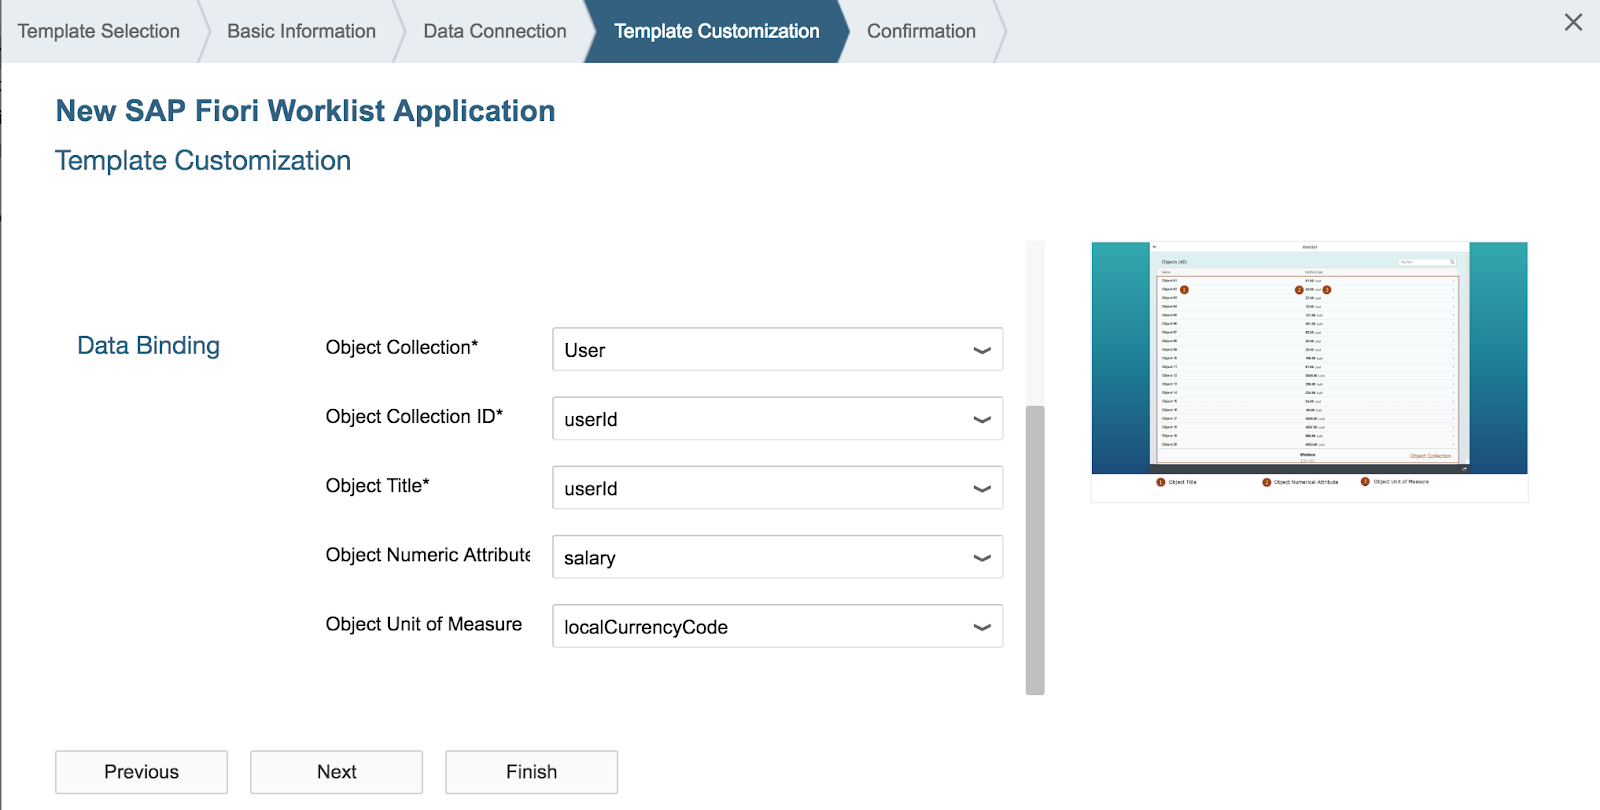 Use sap web ide templates for rapid fiori app development sap blogs when i run the generated application without any modification i get the following error malvernweather Choice Image